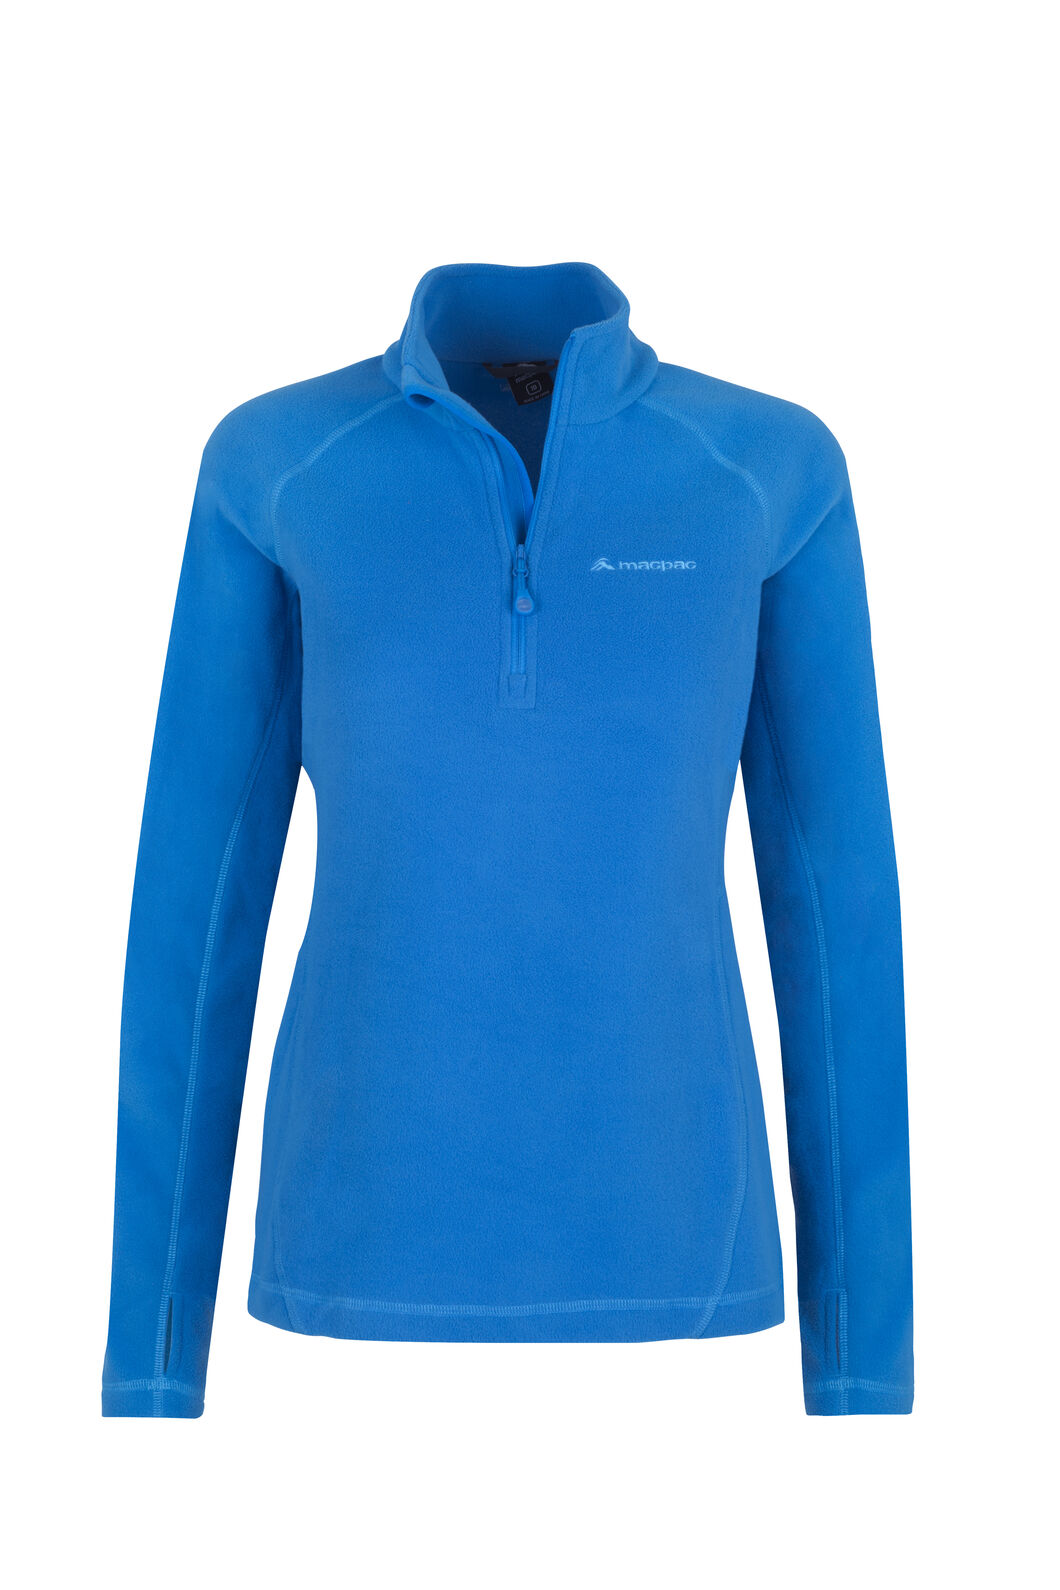 Tui Fleece Pullover - Women's, Directoire, hi-res